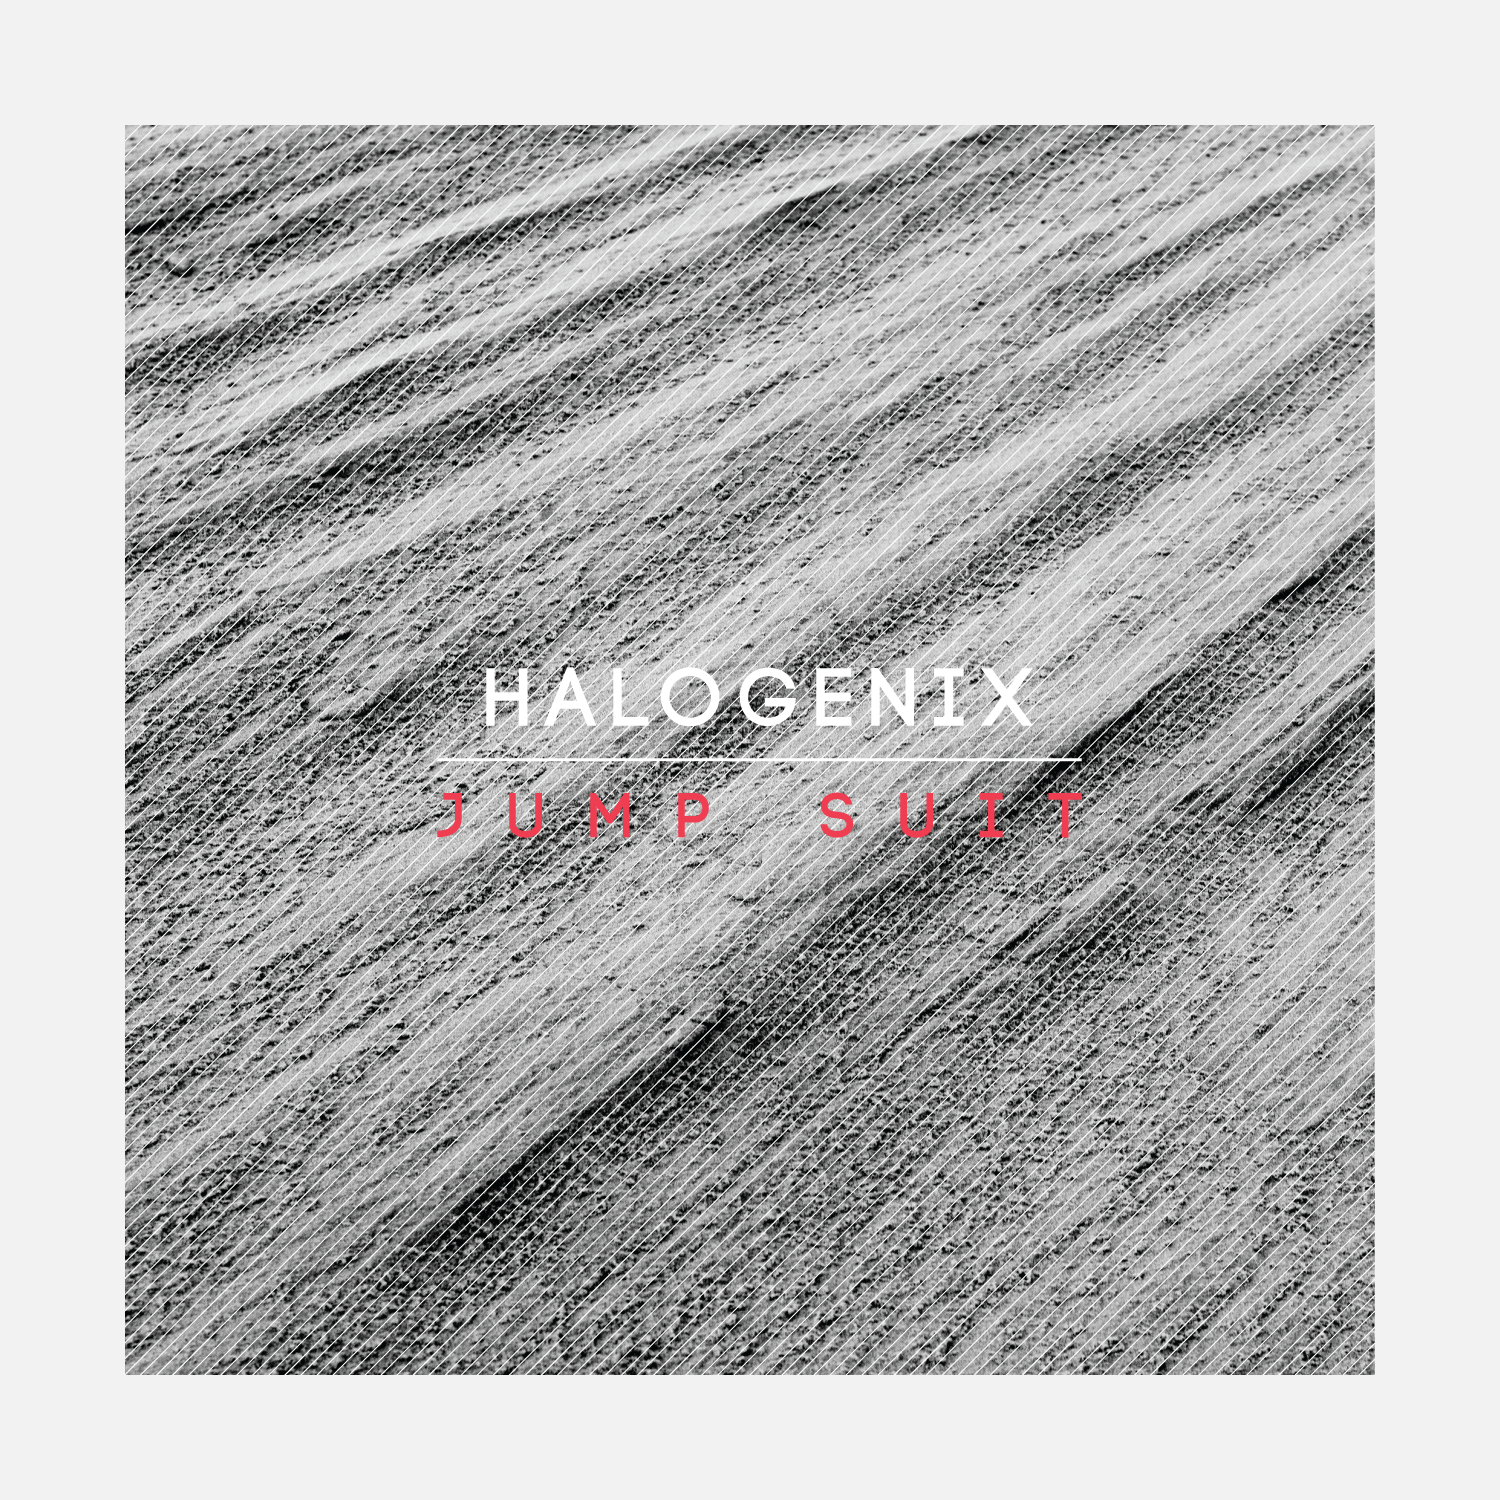 Halogenix - Jump Suit